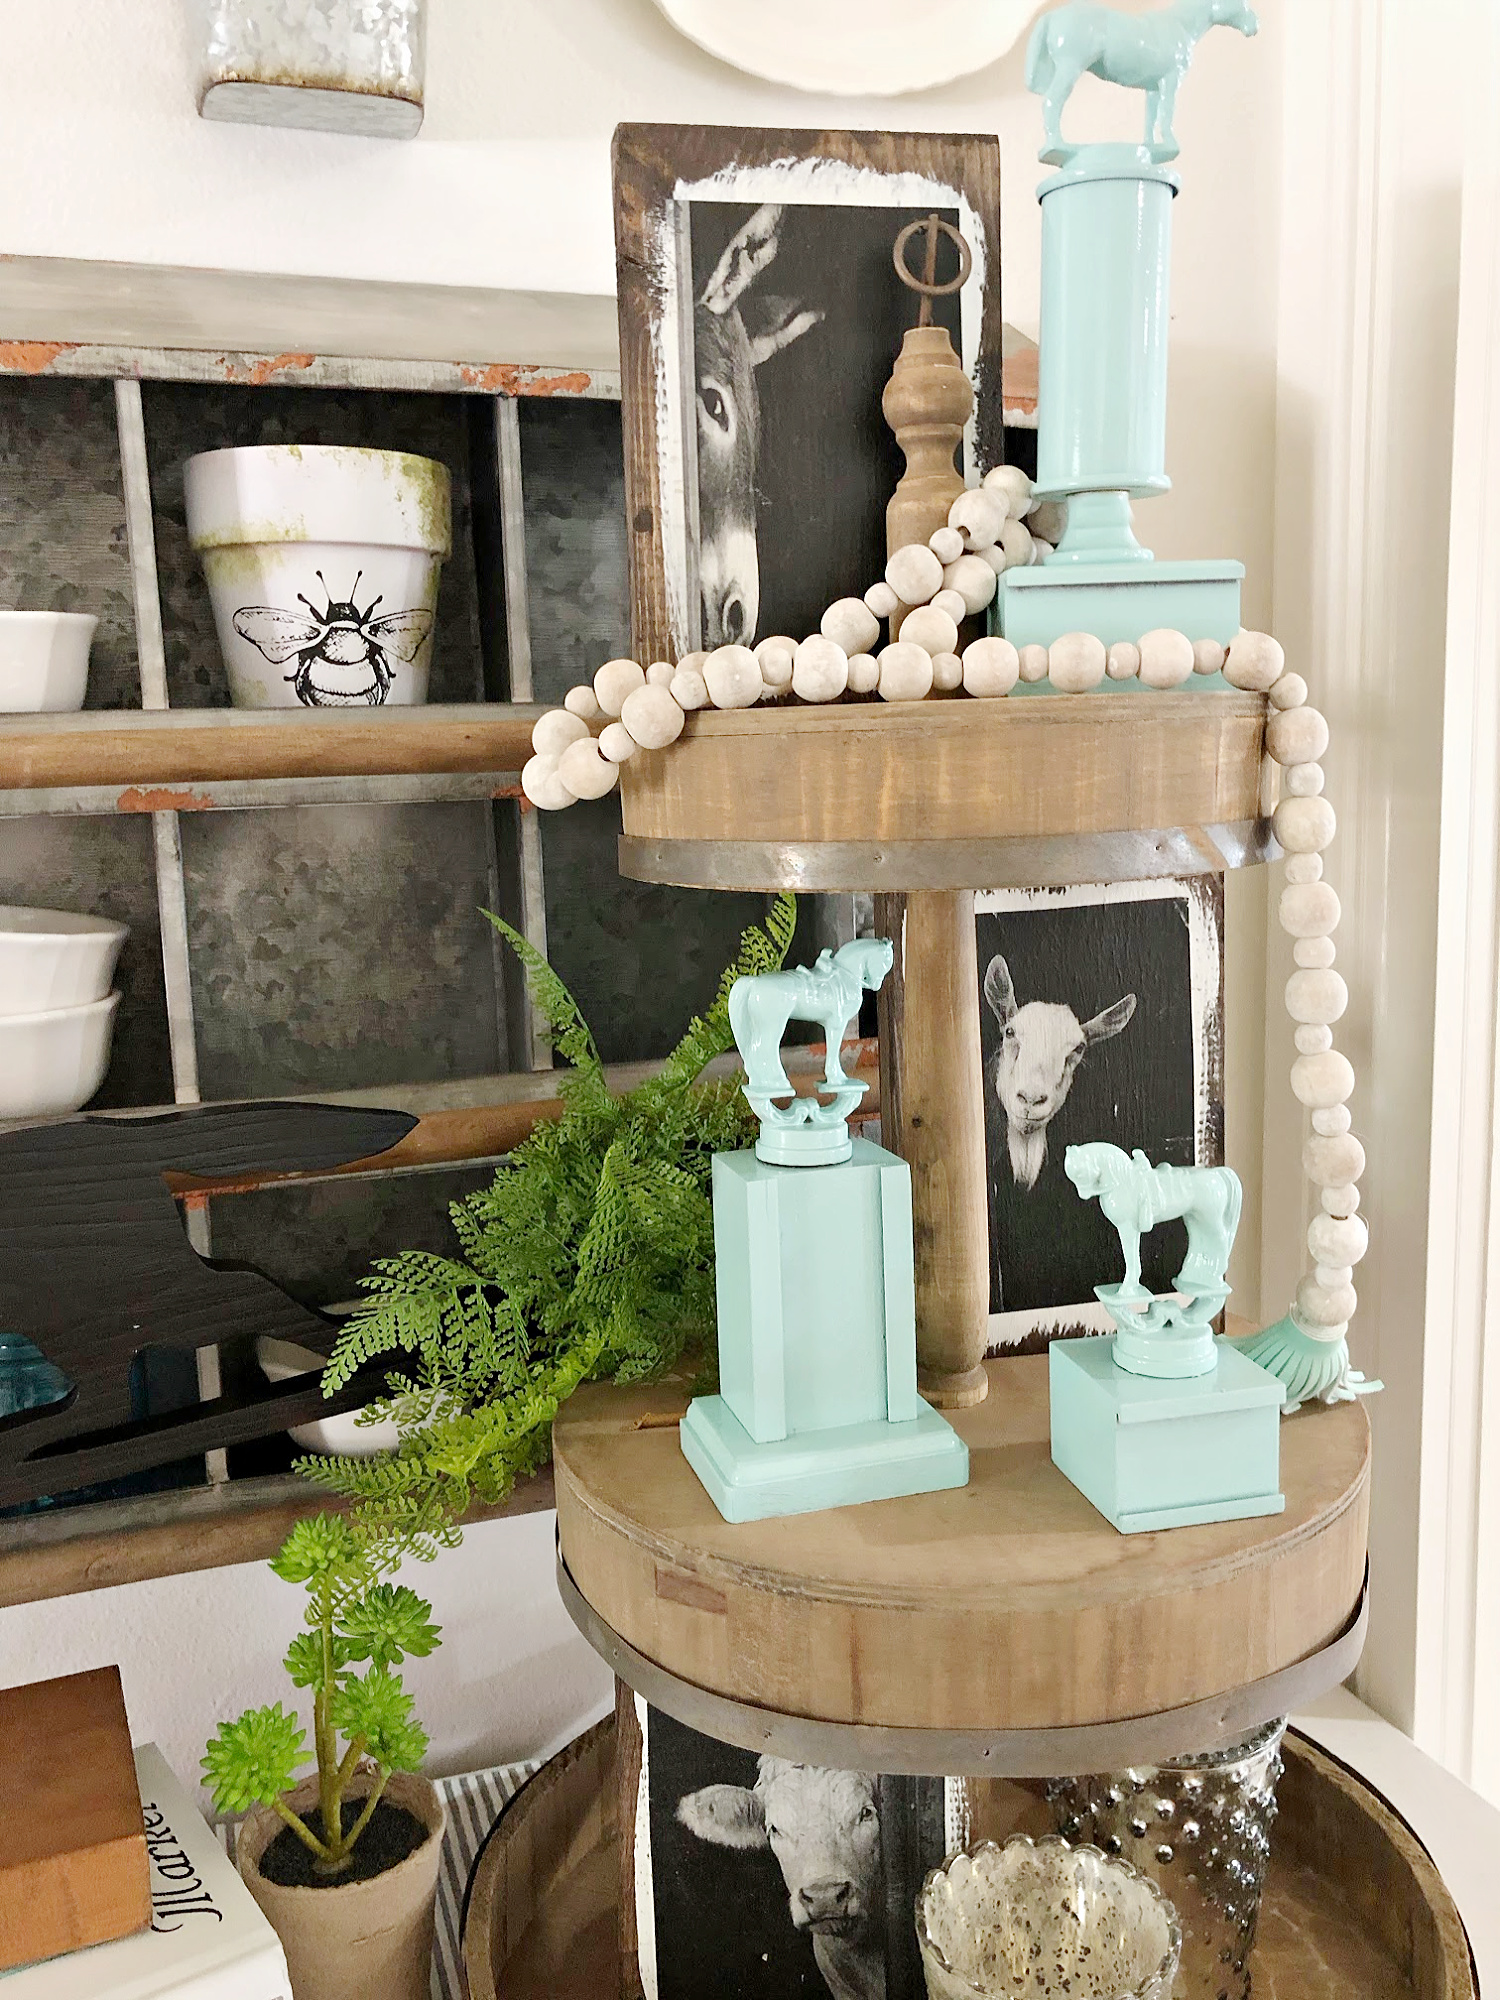 Trophies for tiered shelf